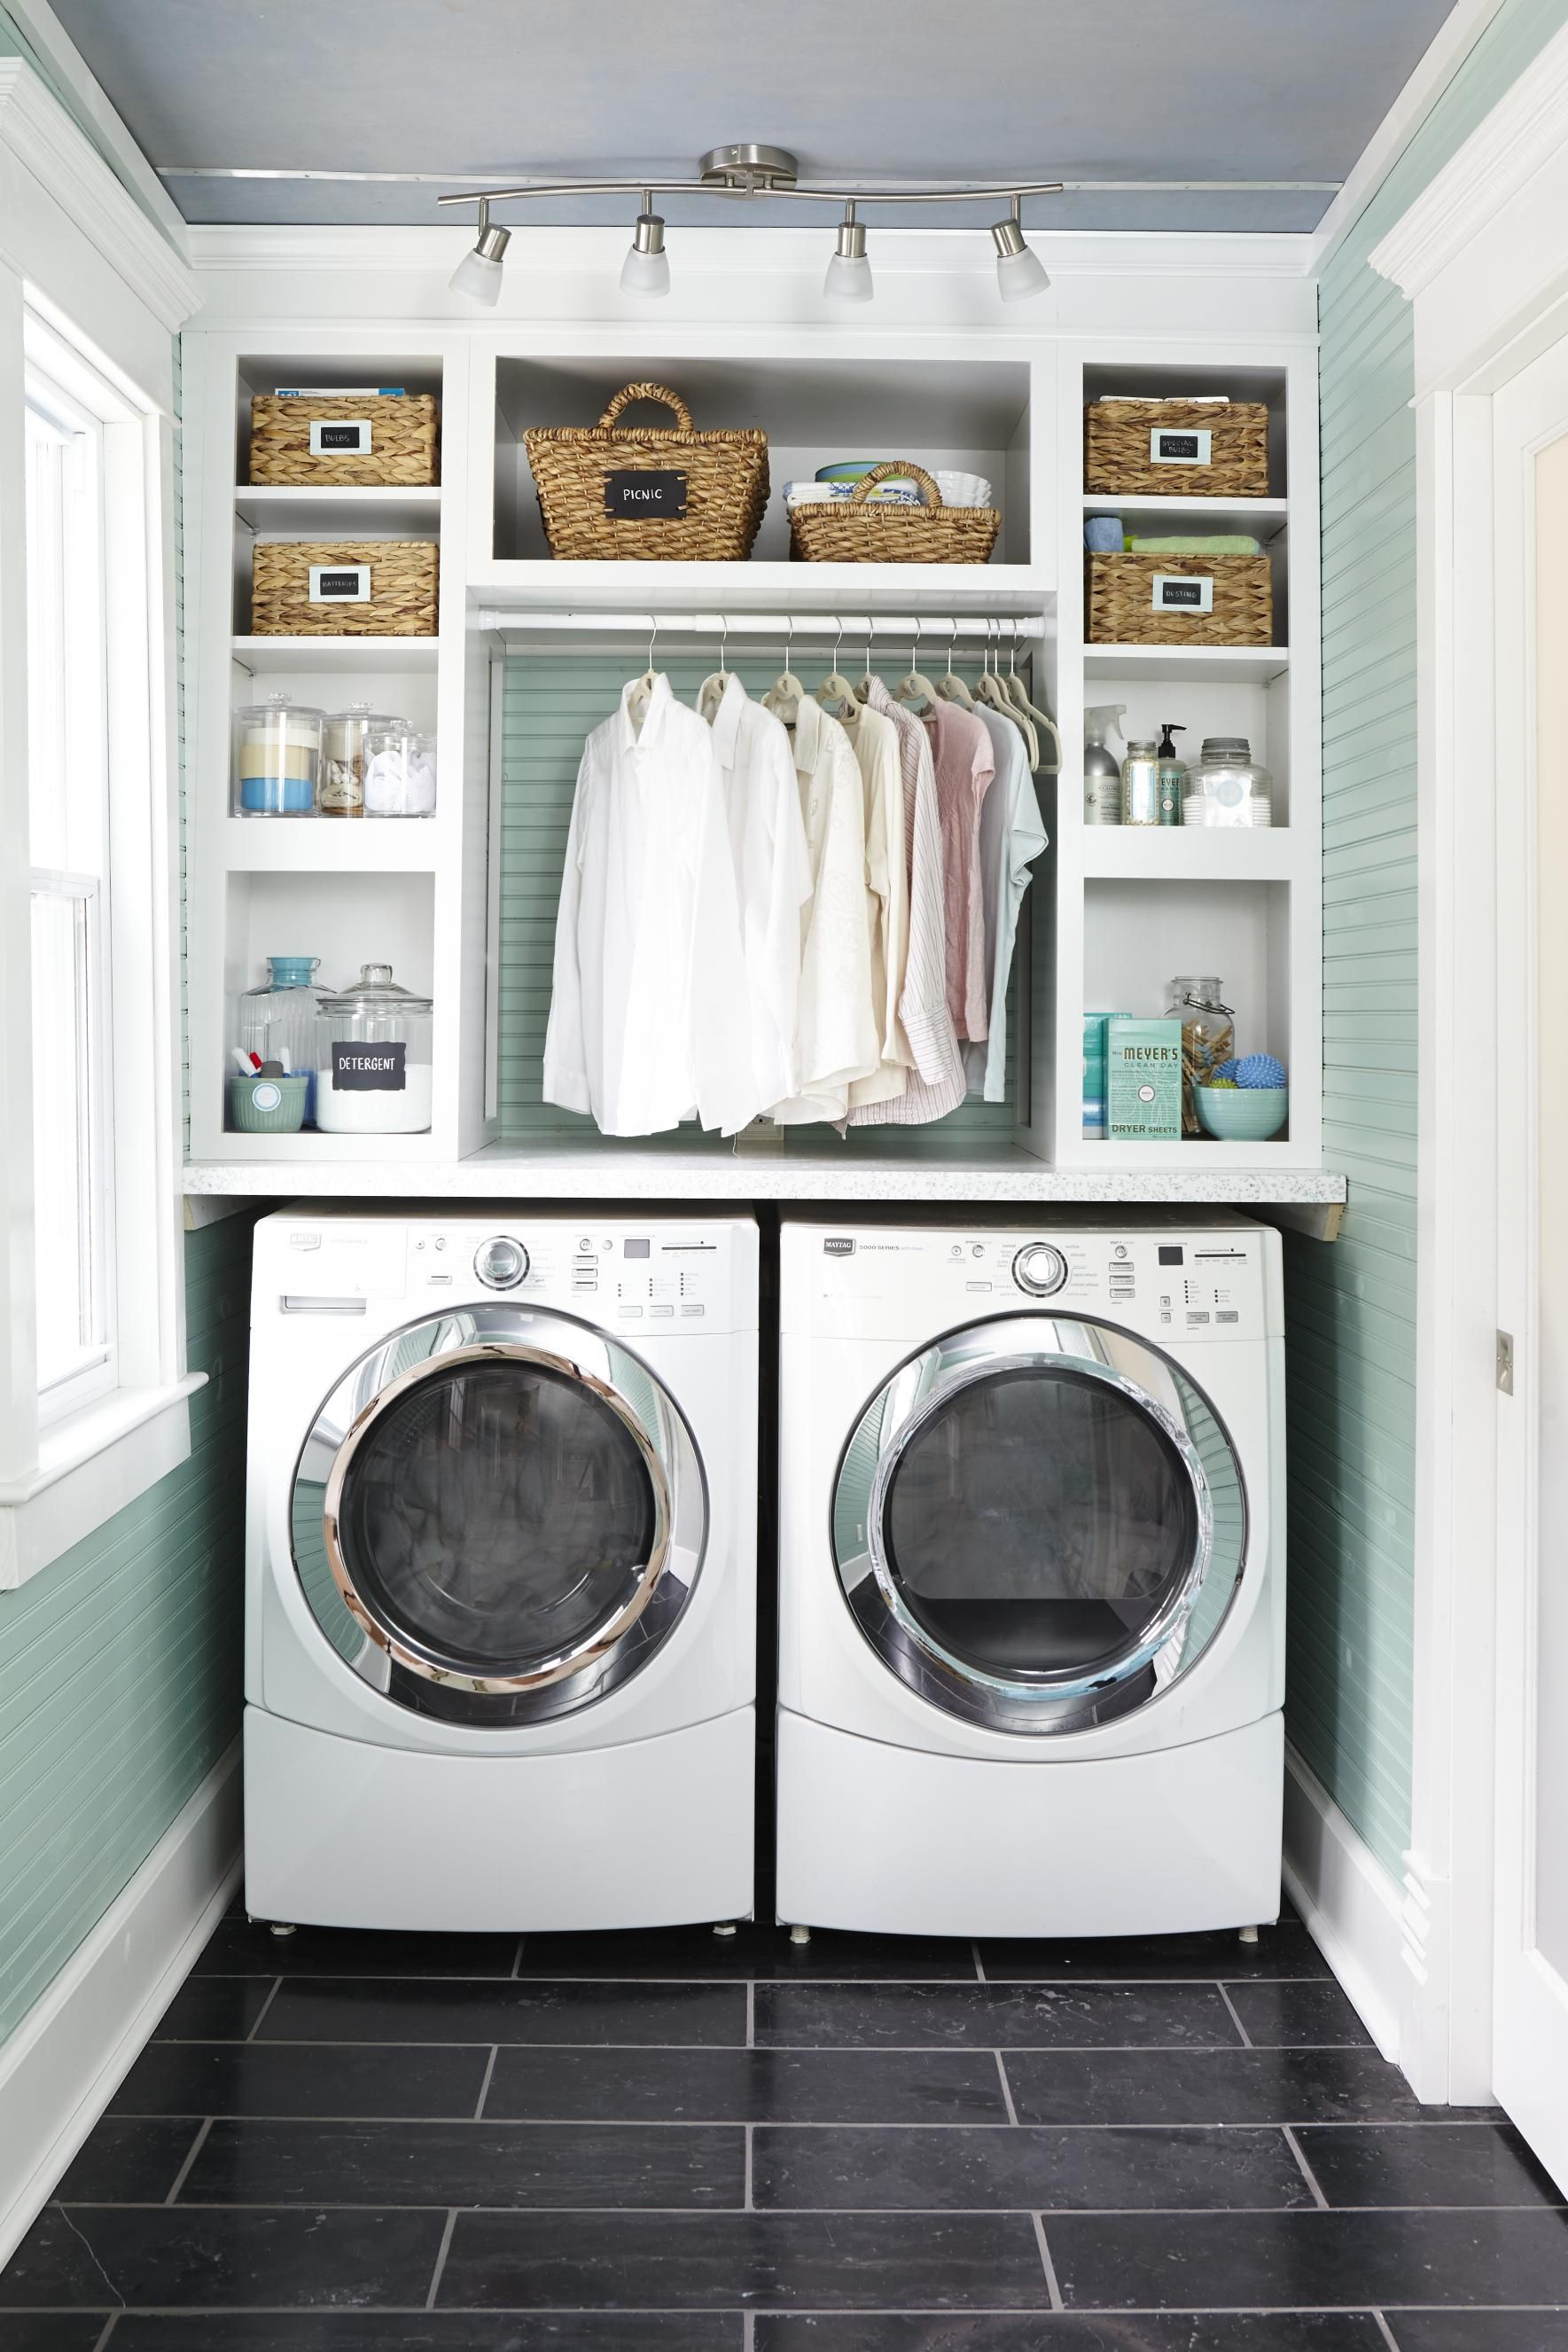 Decorau0027s Daladier Cabinets Are Perfect For Creating The Ultimate Utility  Room, Complete With Space Saving Design Guaranteed To Keep Any Laundry Room  Clean ...